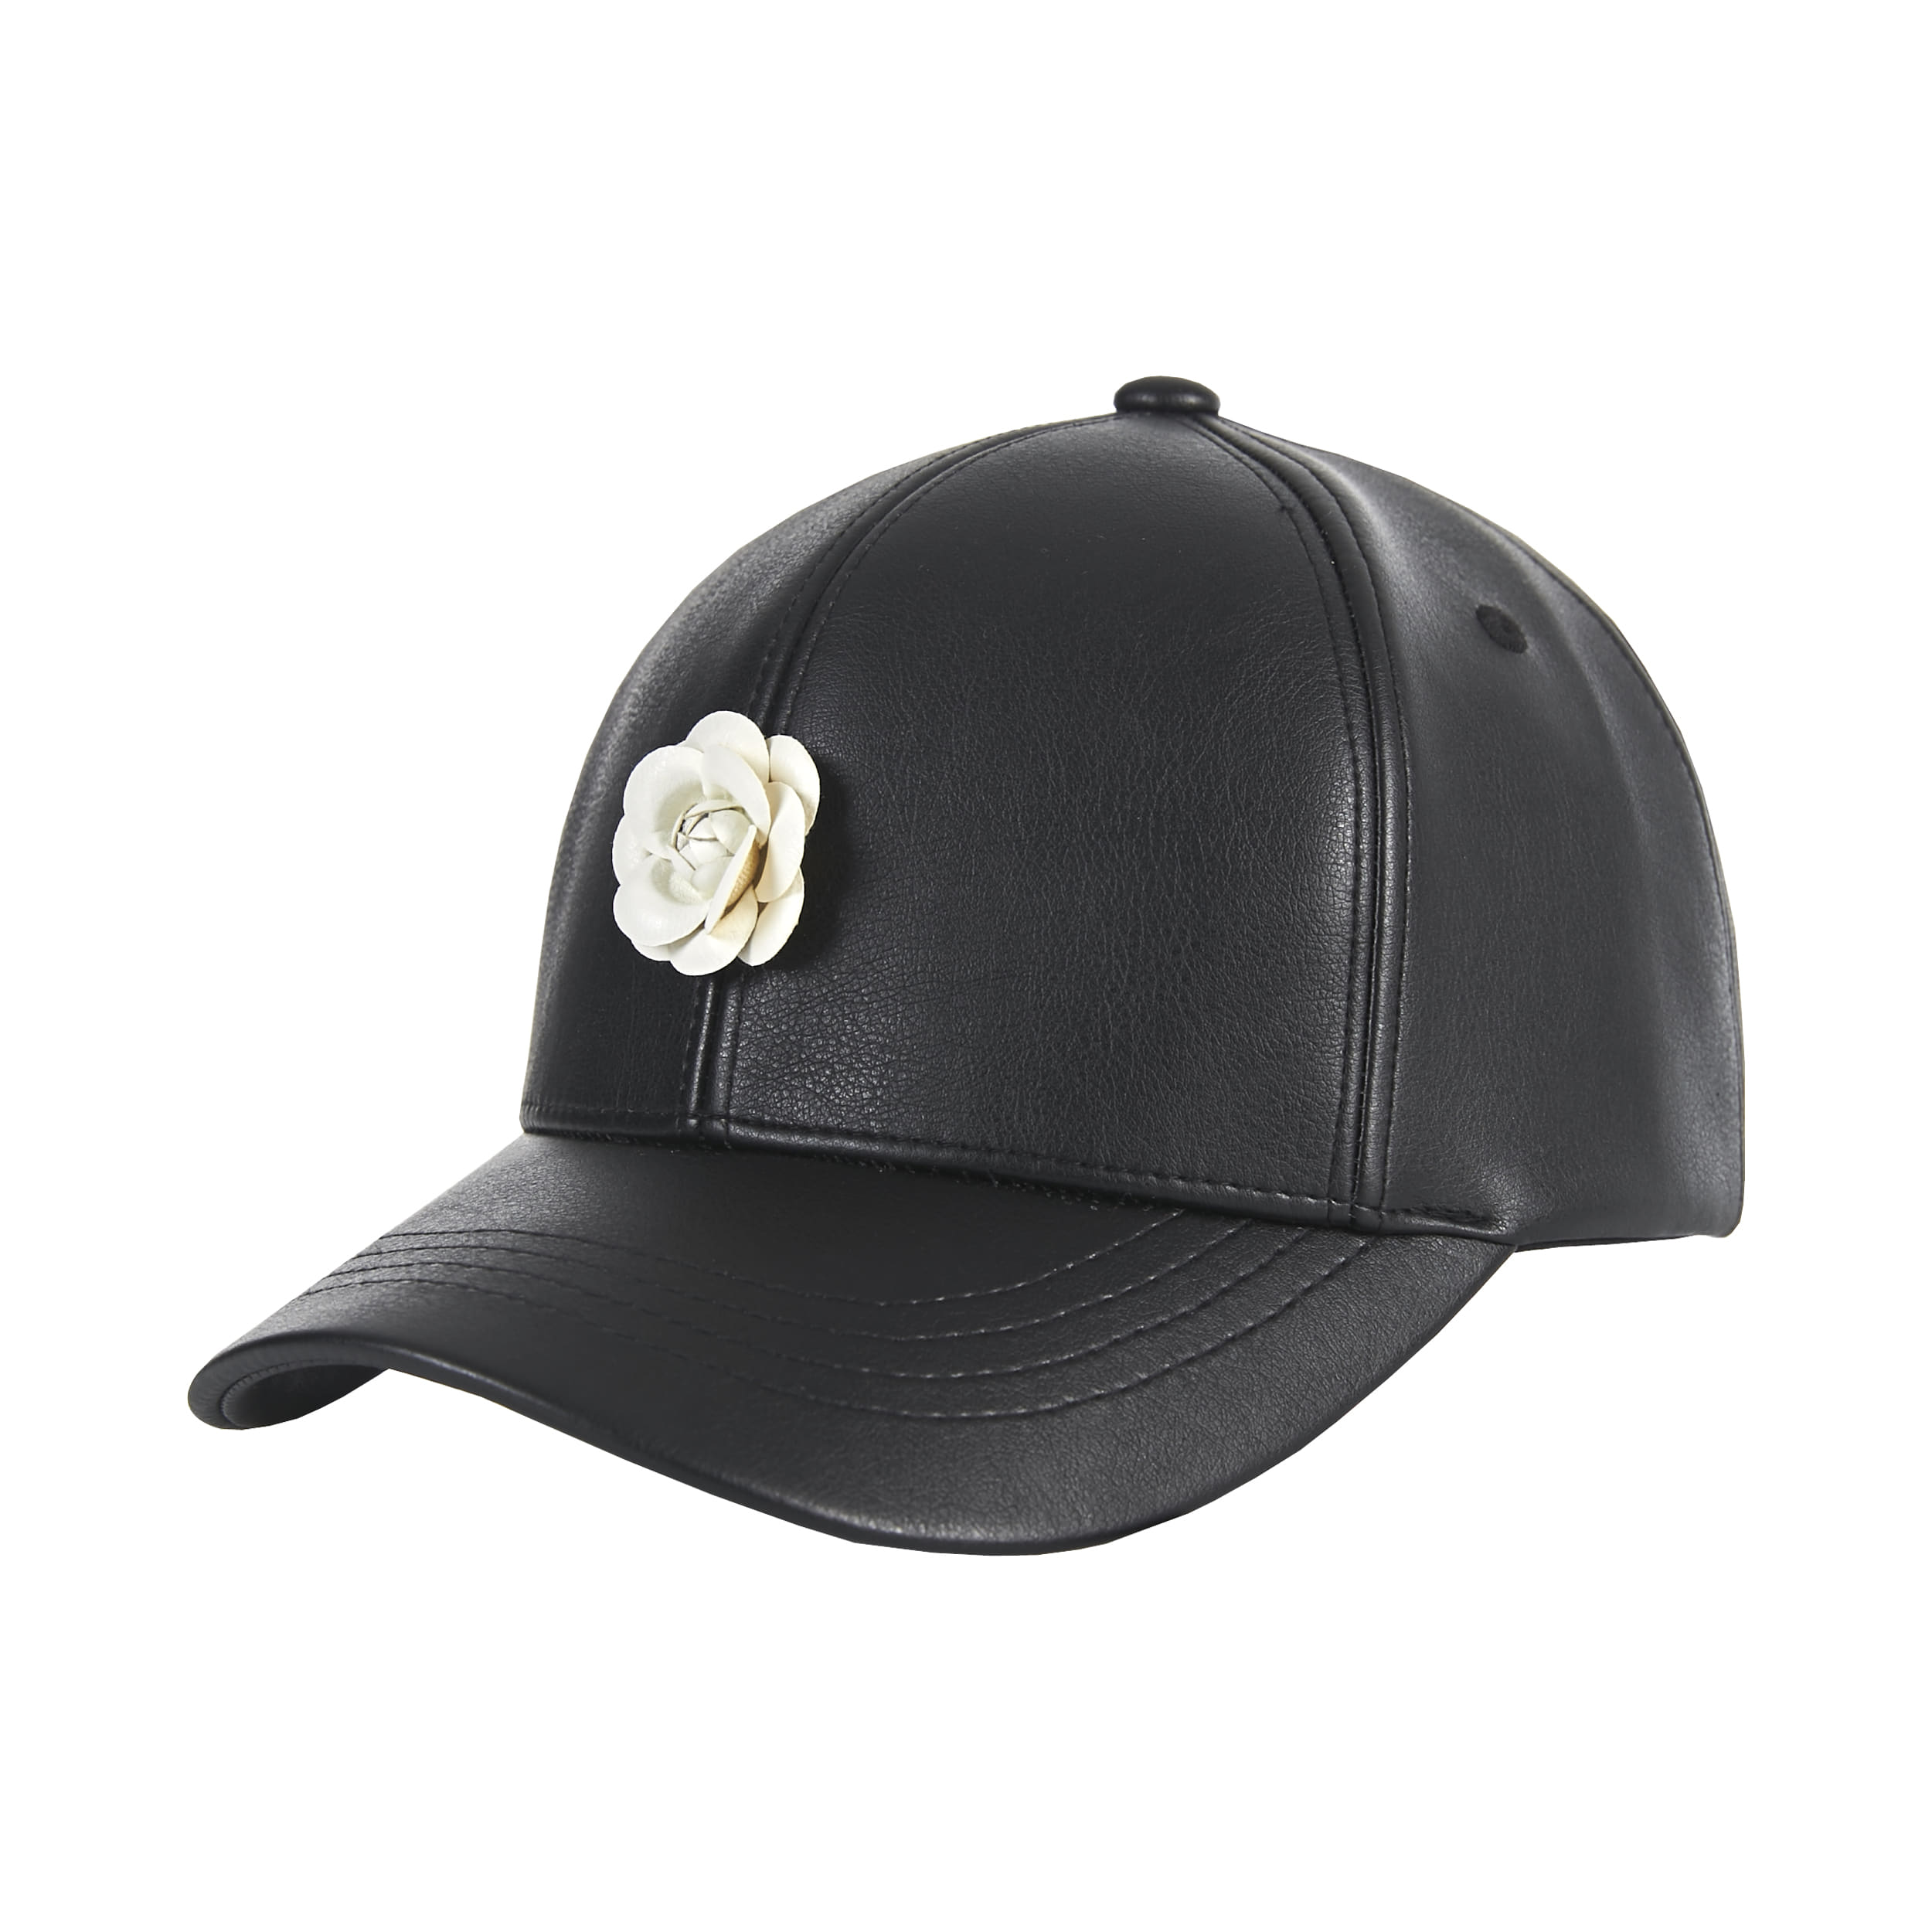 [바잘]   Camellia leather ballcap black/white